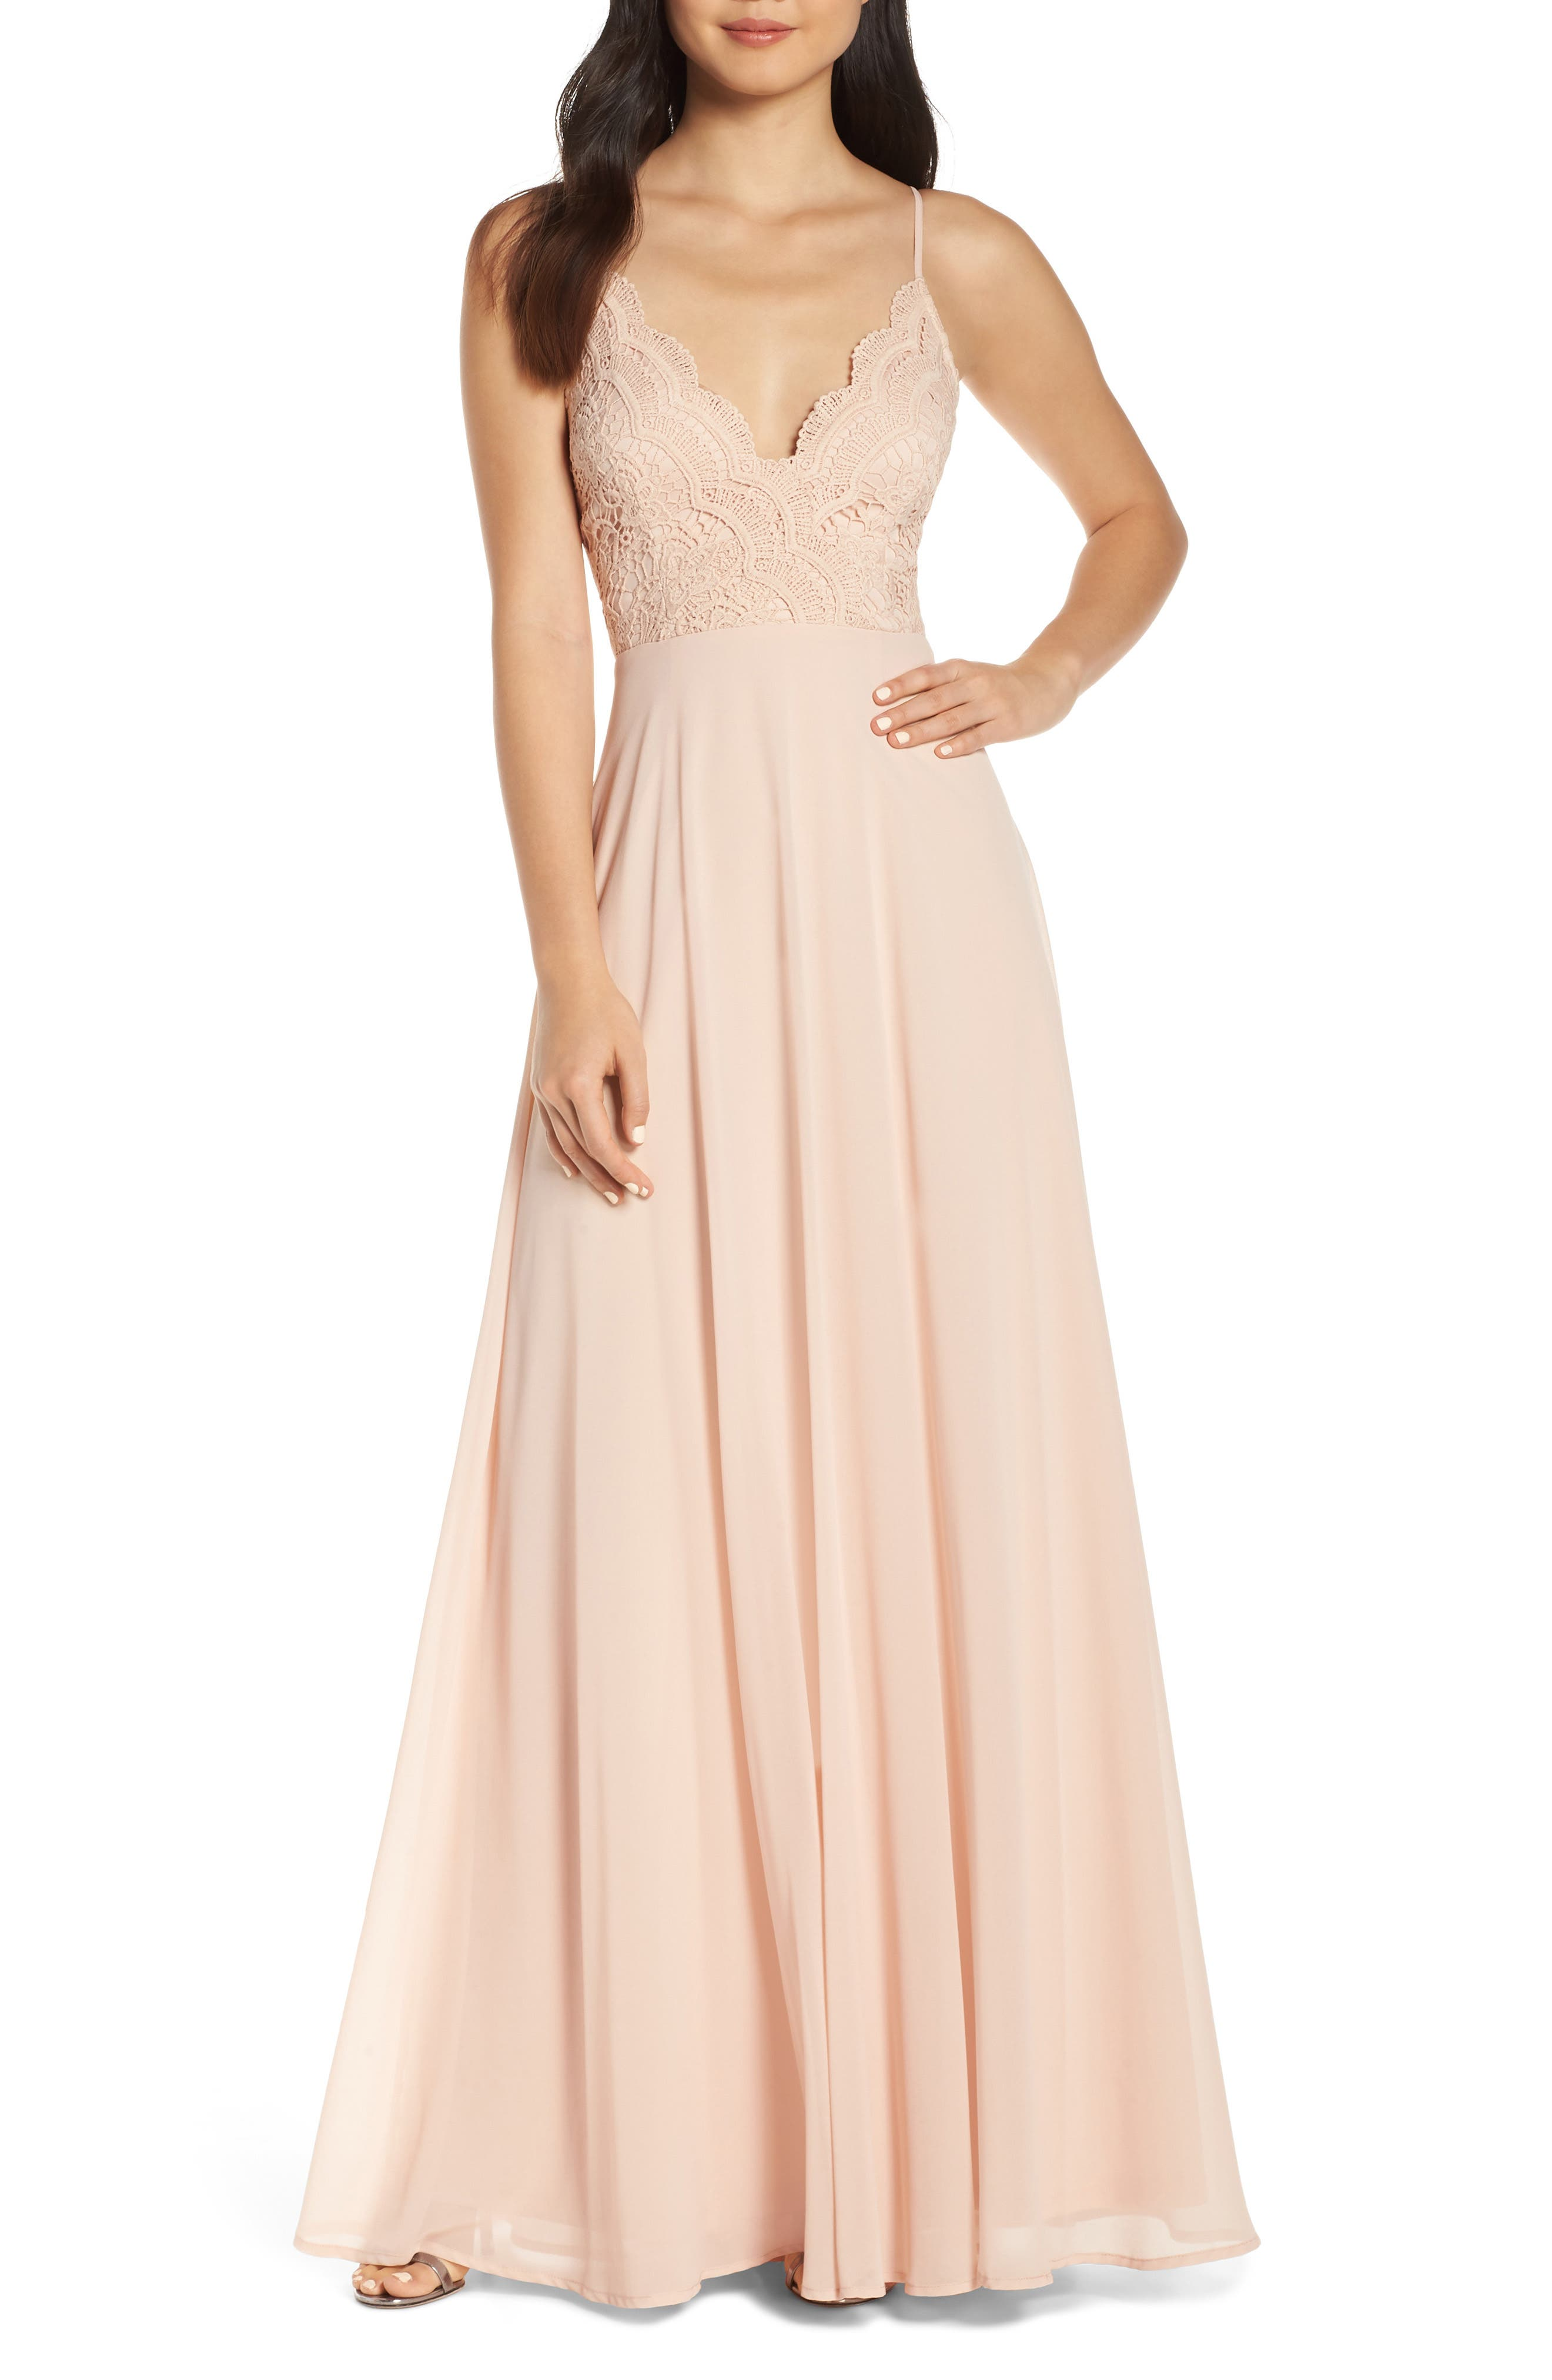 Lulus Madalyn V-Neck Lace & Chiffon Evening Dress, Pink